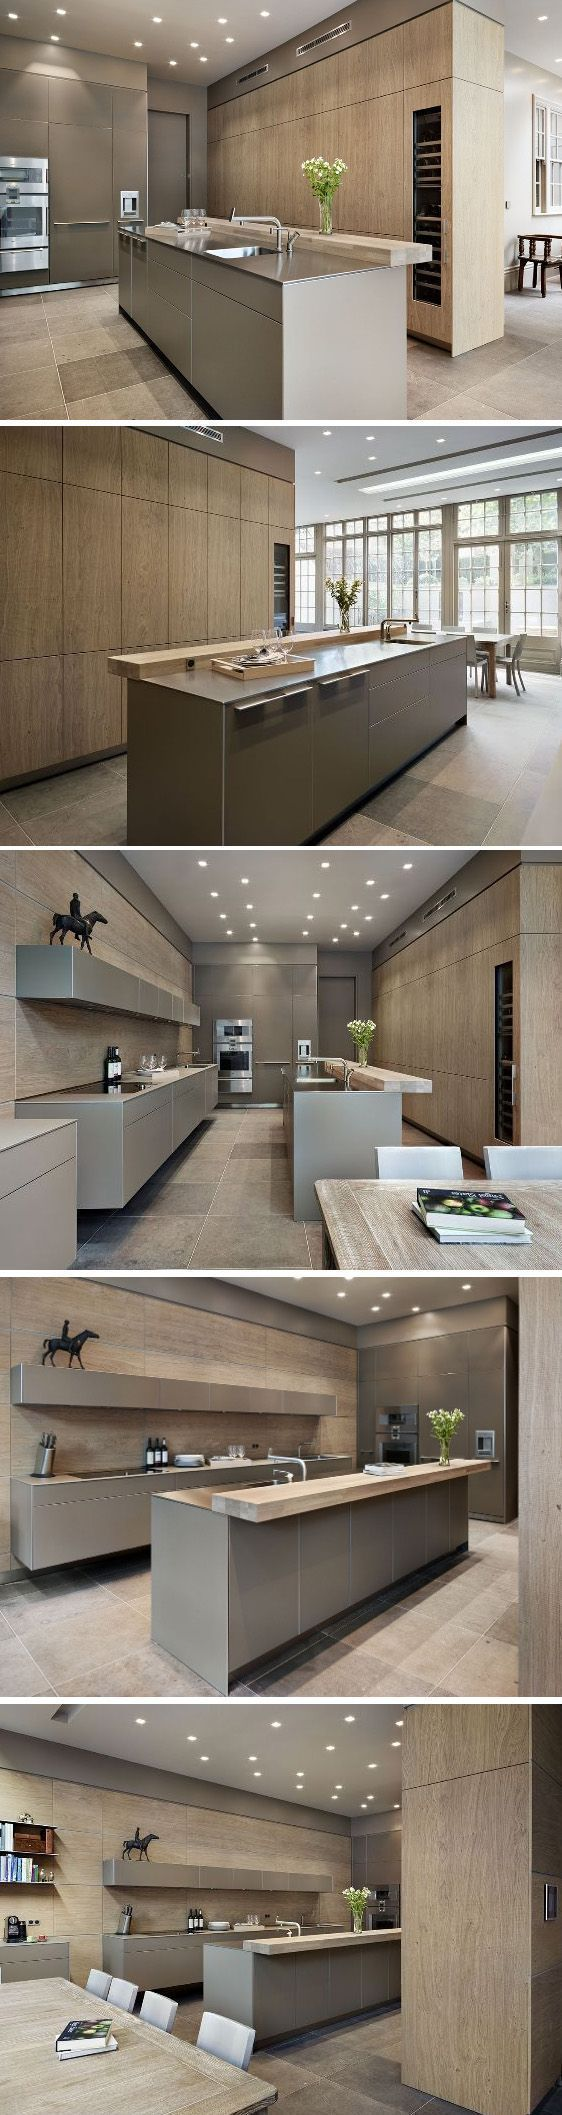 Browse photos of modern kitchen designs. Discover inspiration for your minimalist kitchen remodel or upgrade with ideas for storage, organization, layout and ... #minimalistkitchen